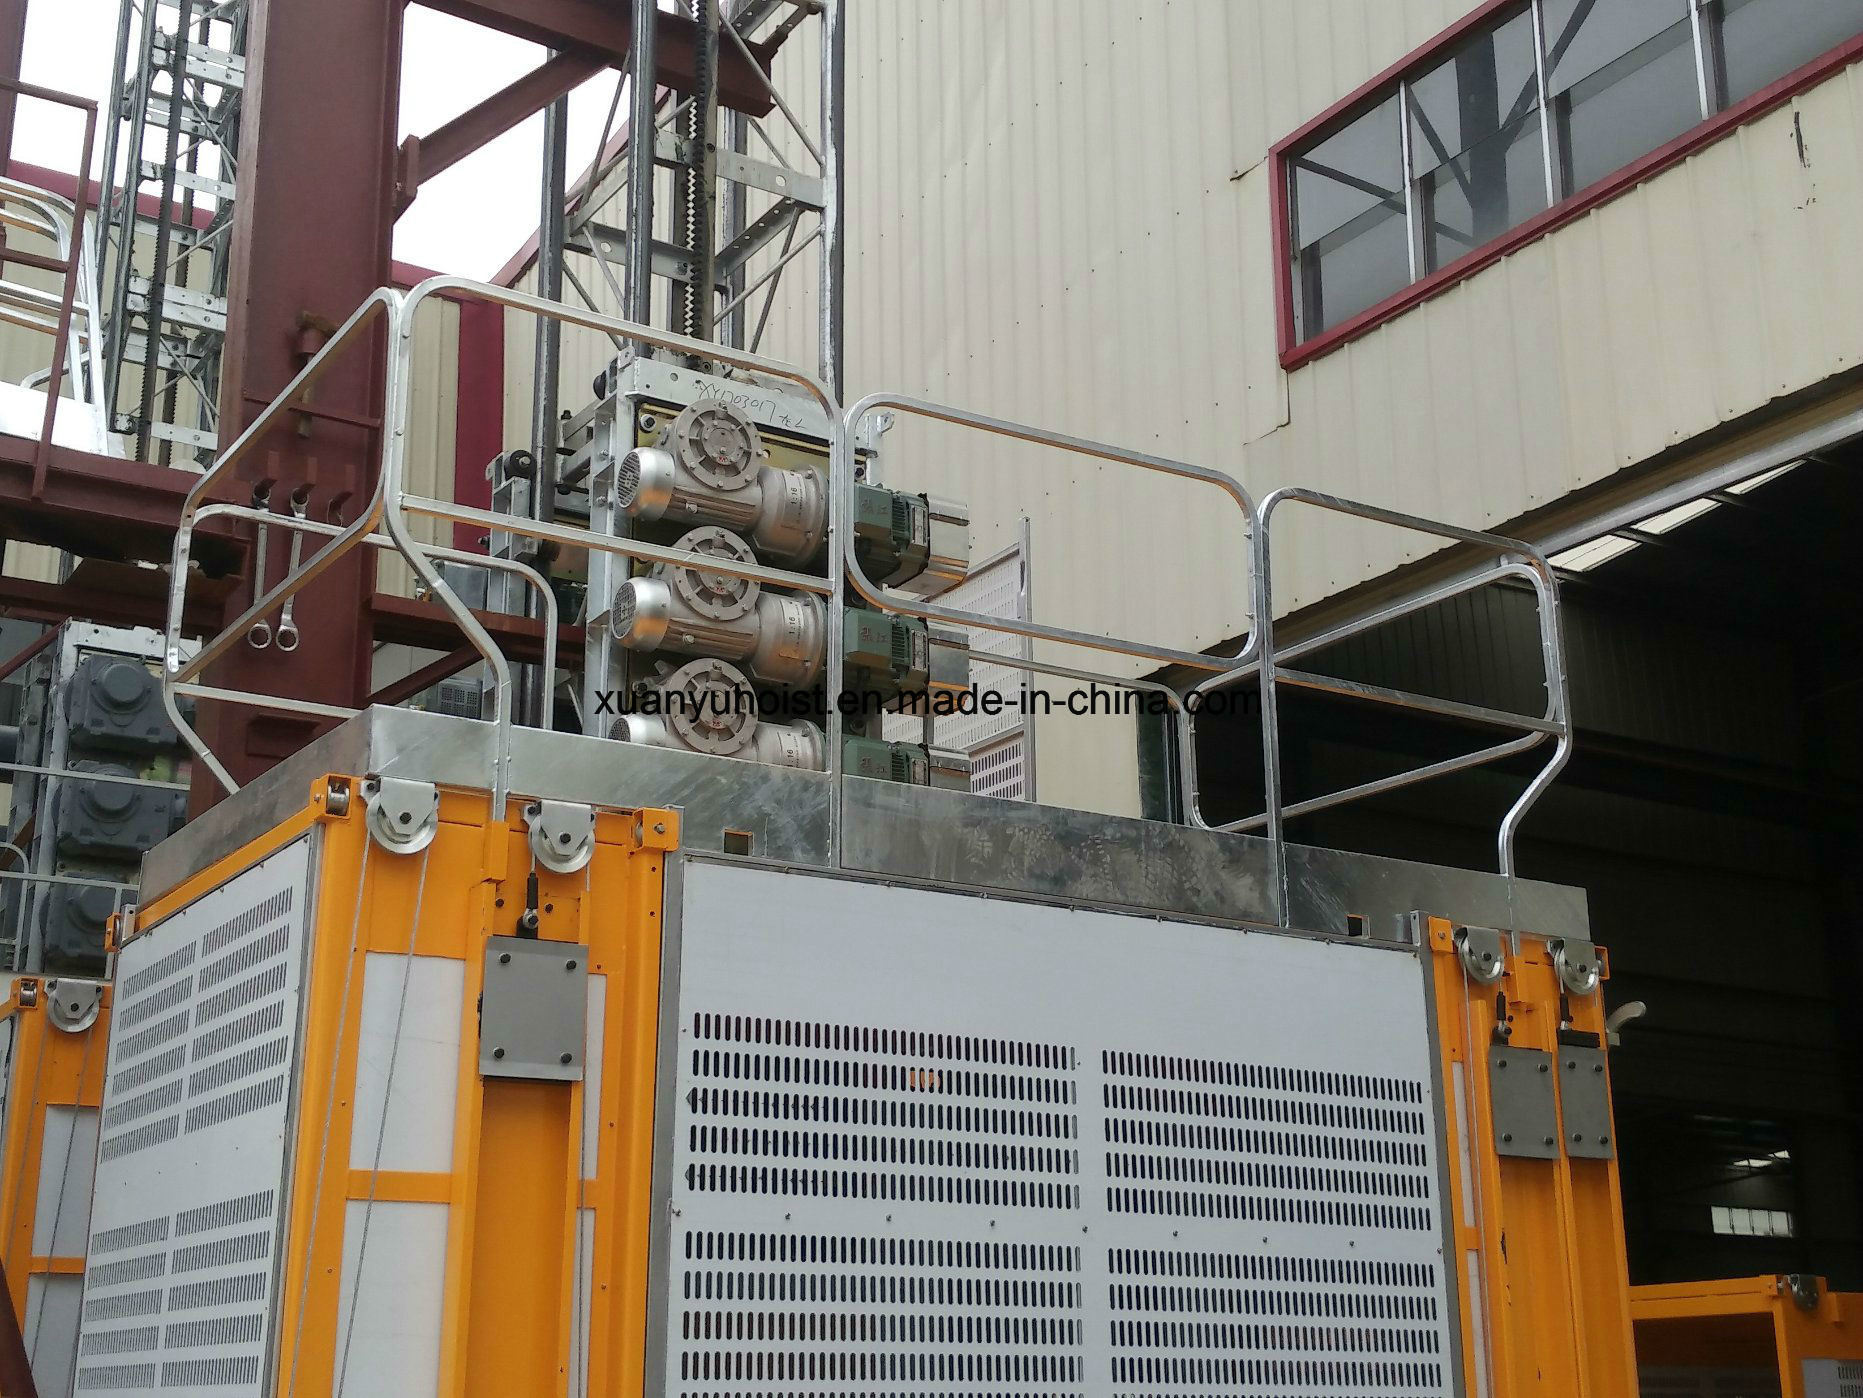 Factory Supplier Ce Approved Construction Elevator, Construction Hoist for Sale